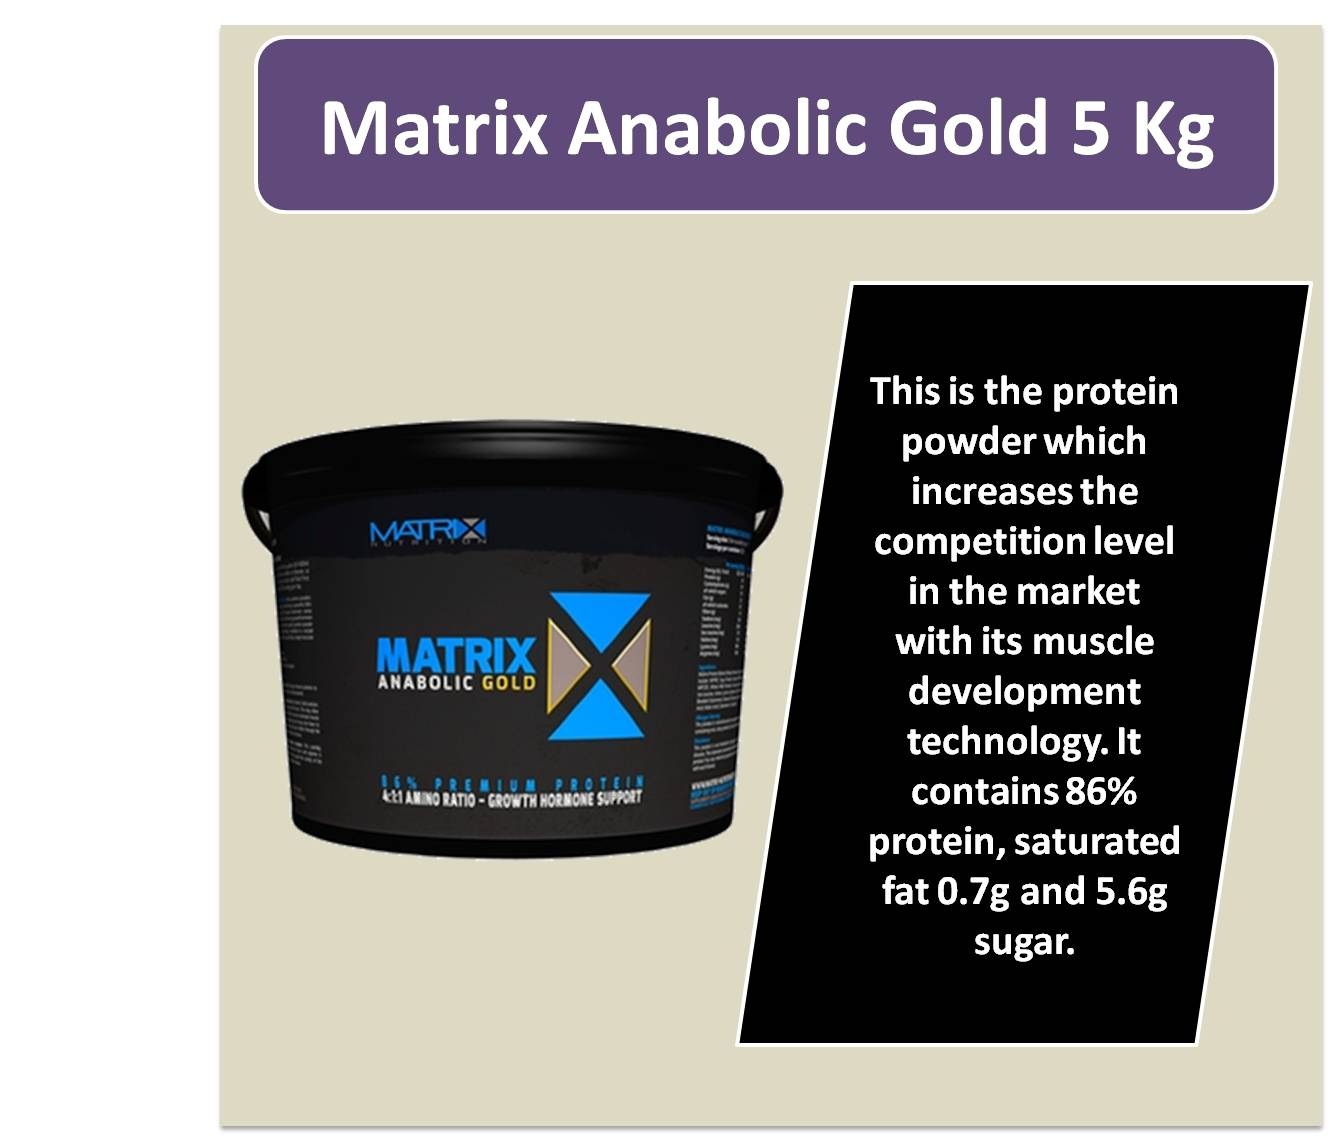 Matrix Anabolic Gold 5 Kg